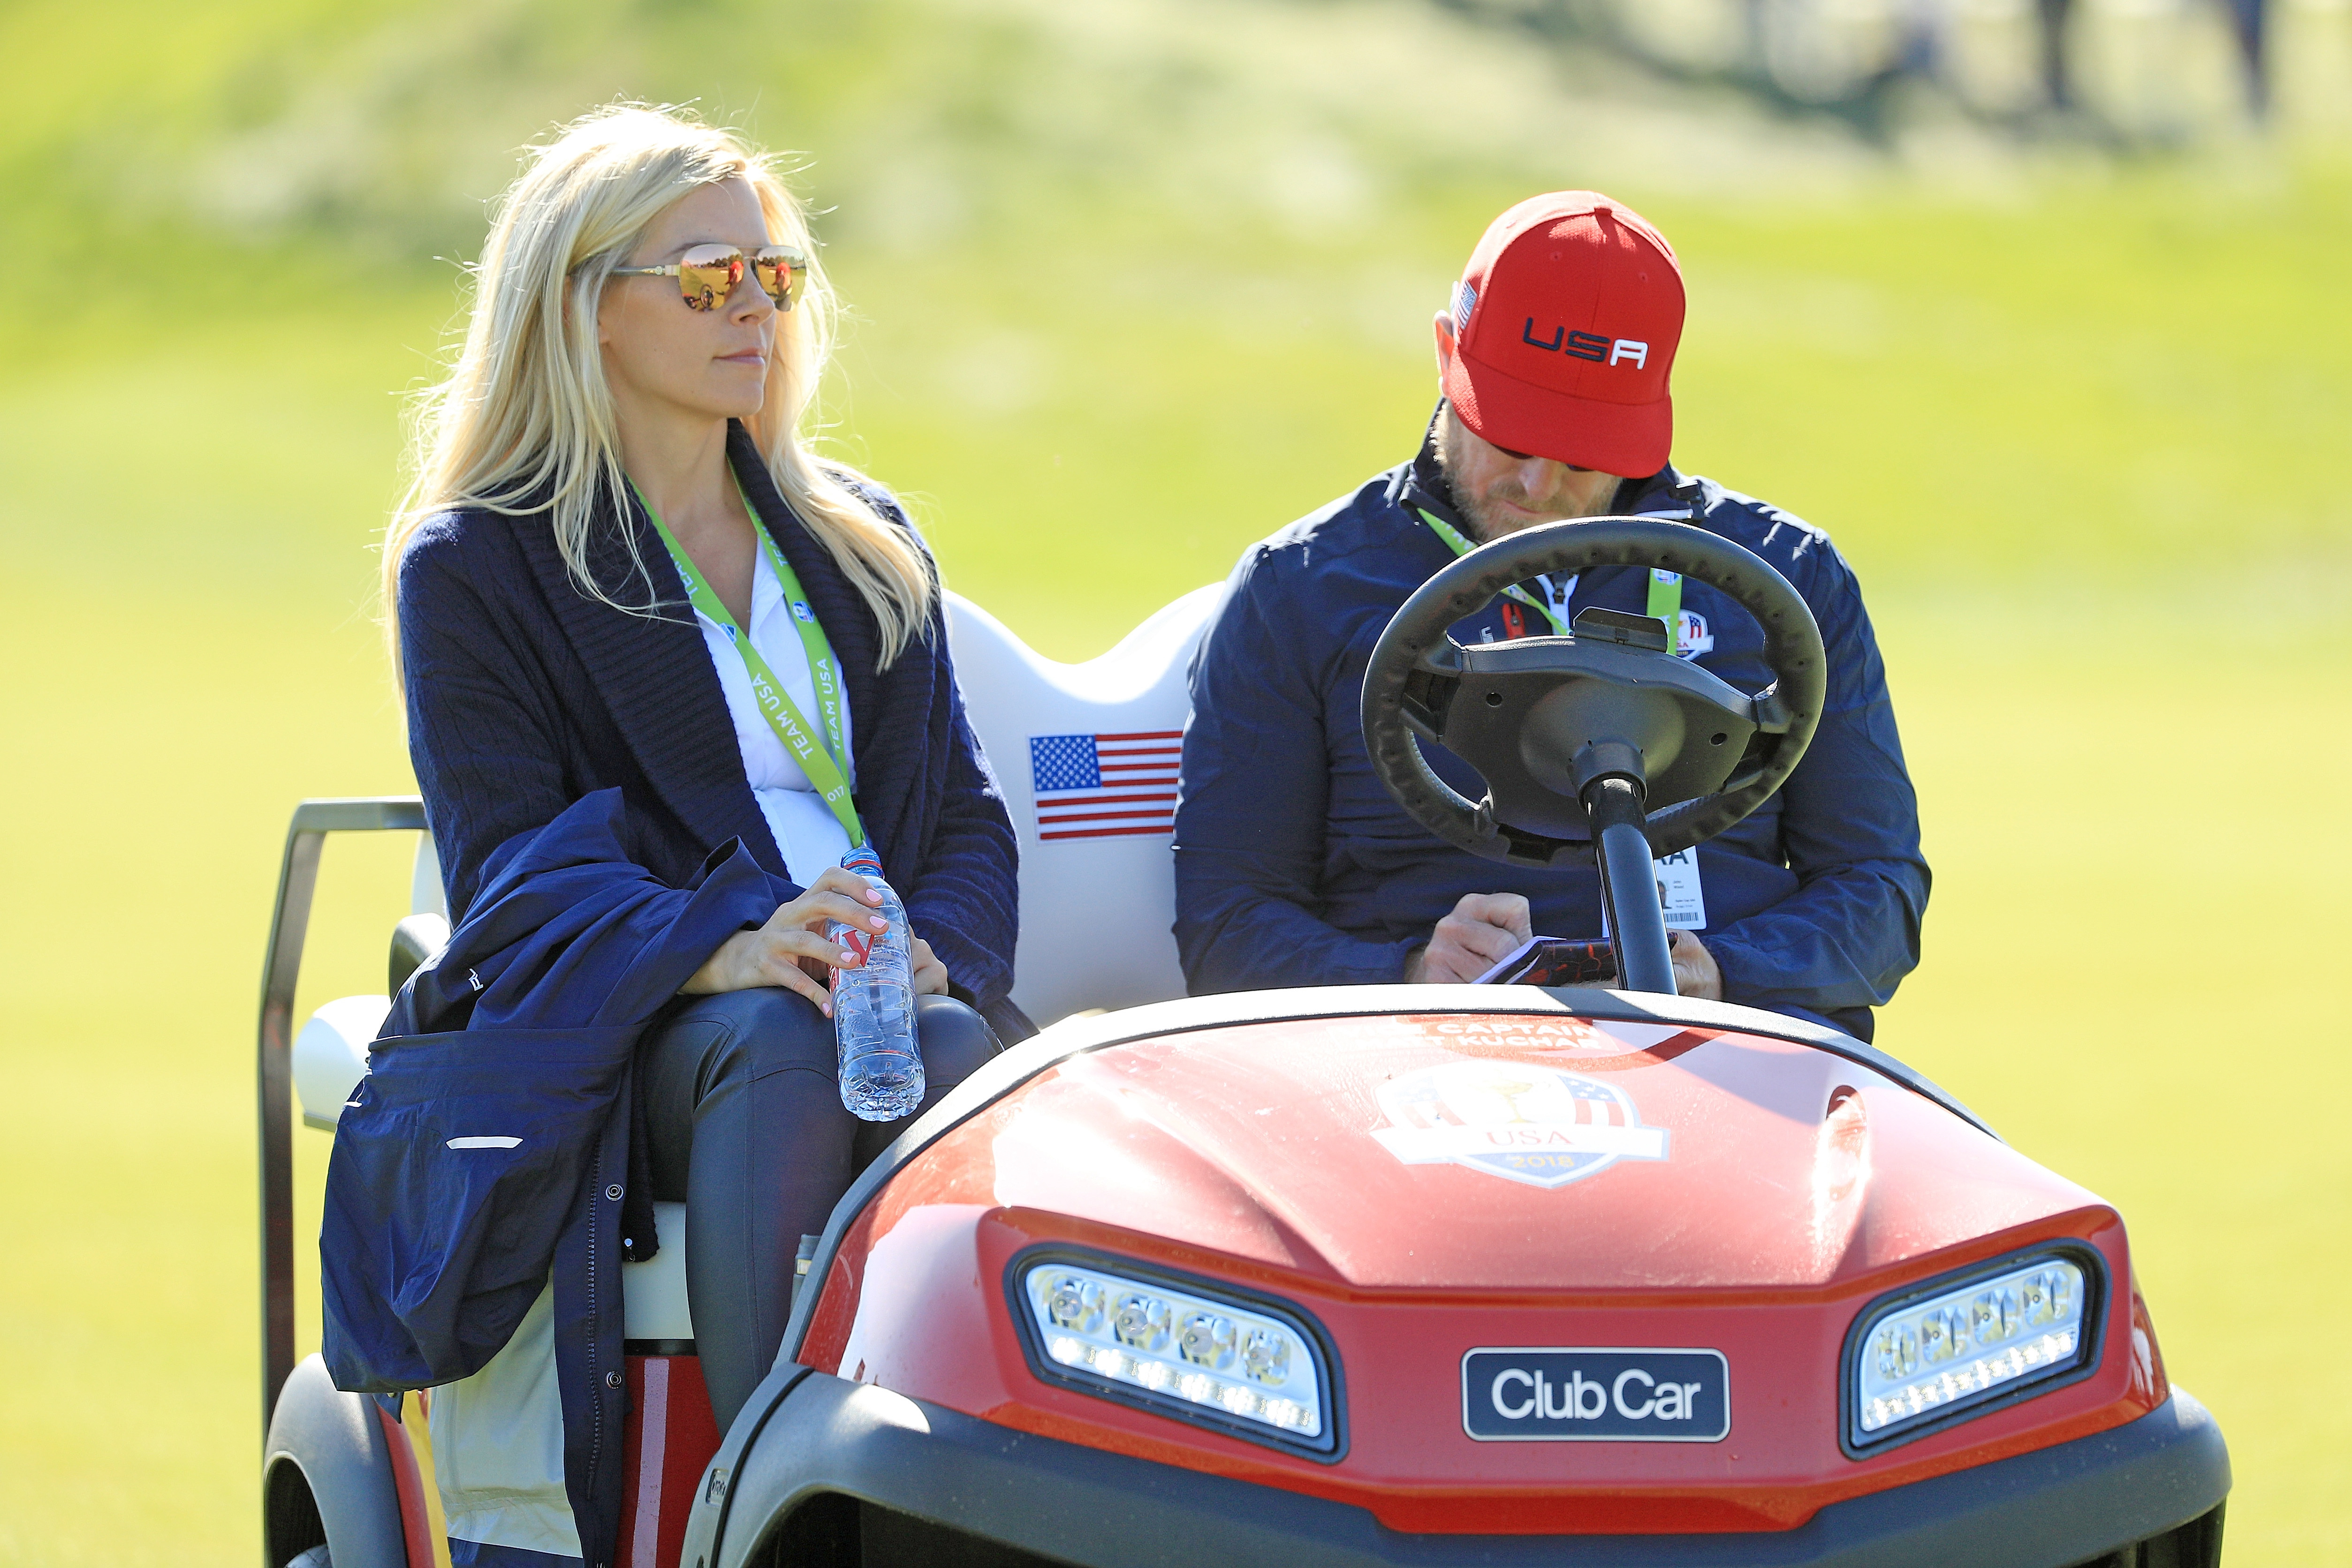 PARIS, FRANCE - SEPTEMBER 30: Webb Simpson of the United States wife Dowd Simpson and John Wood during singles matches of the 2018 Ryder Cup at Le Golf National on September 30, 2018 in Paris, France. (Photo by Mike Ehrmann/Getty Images)